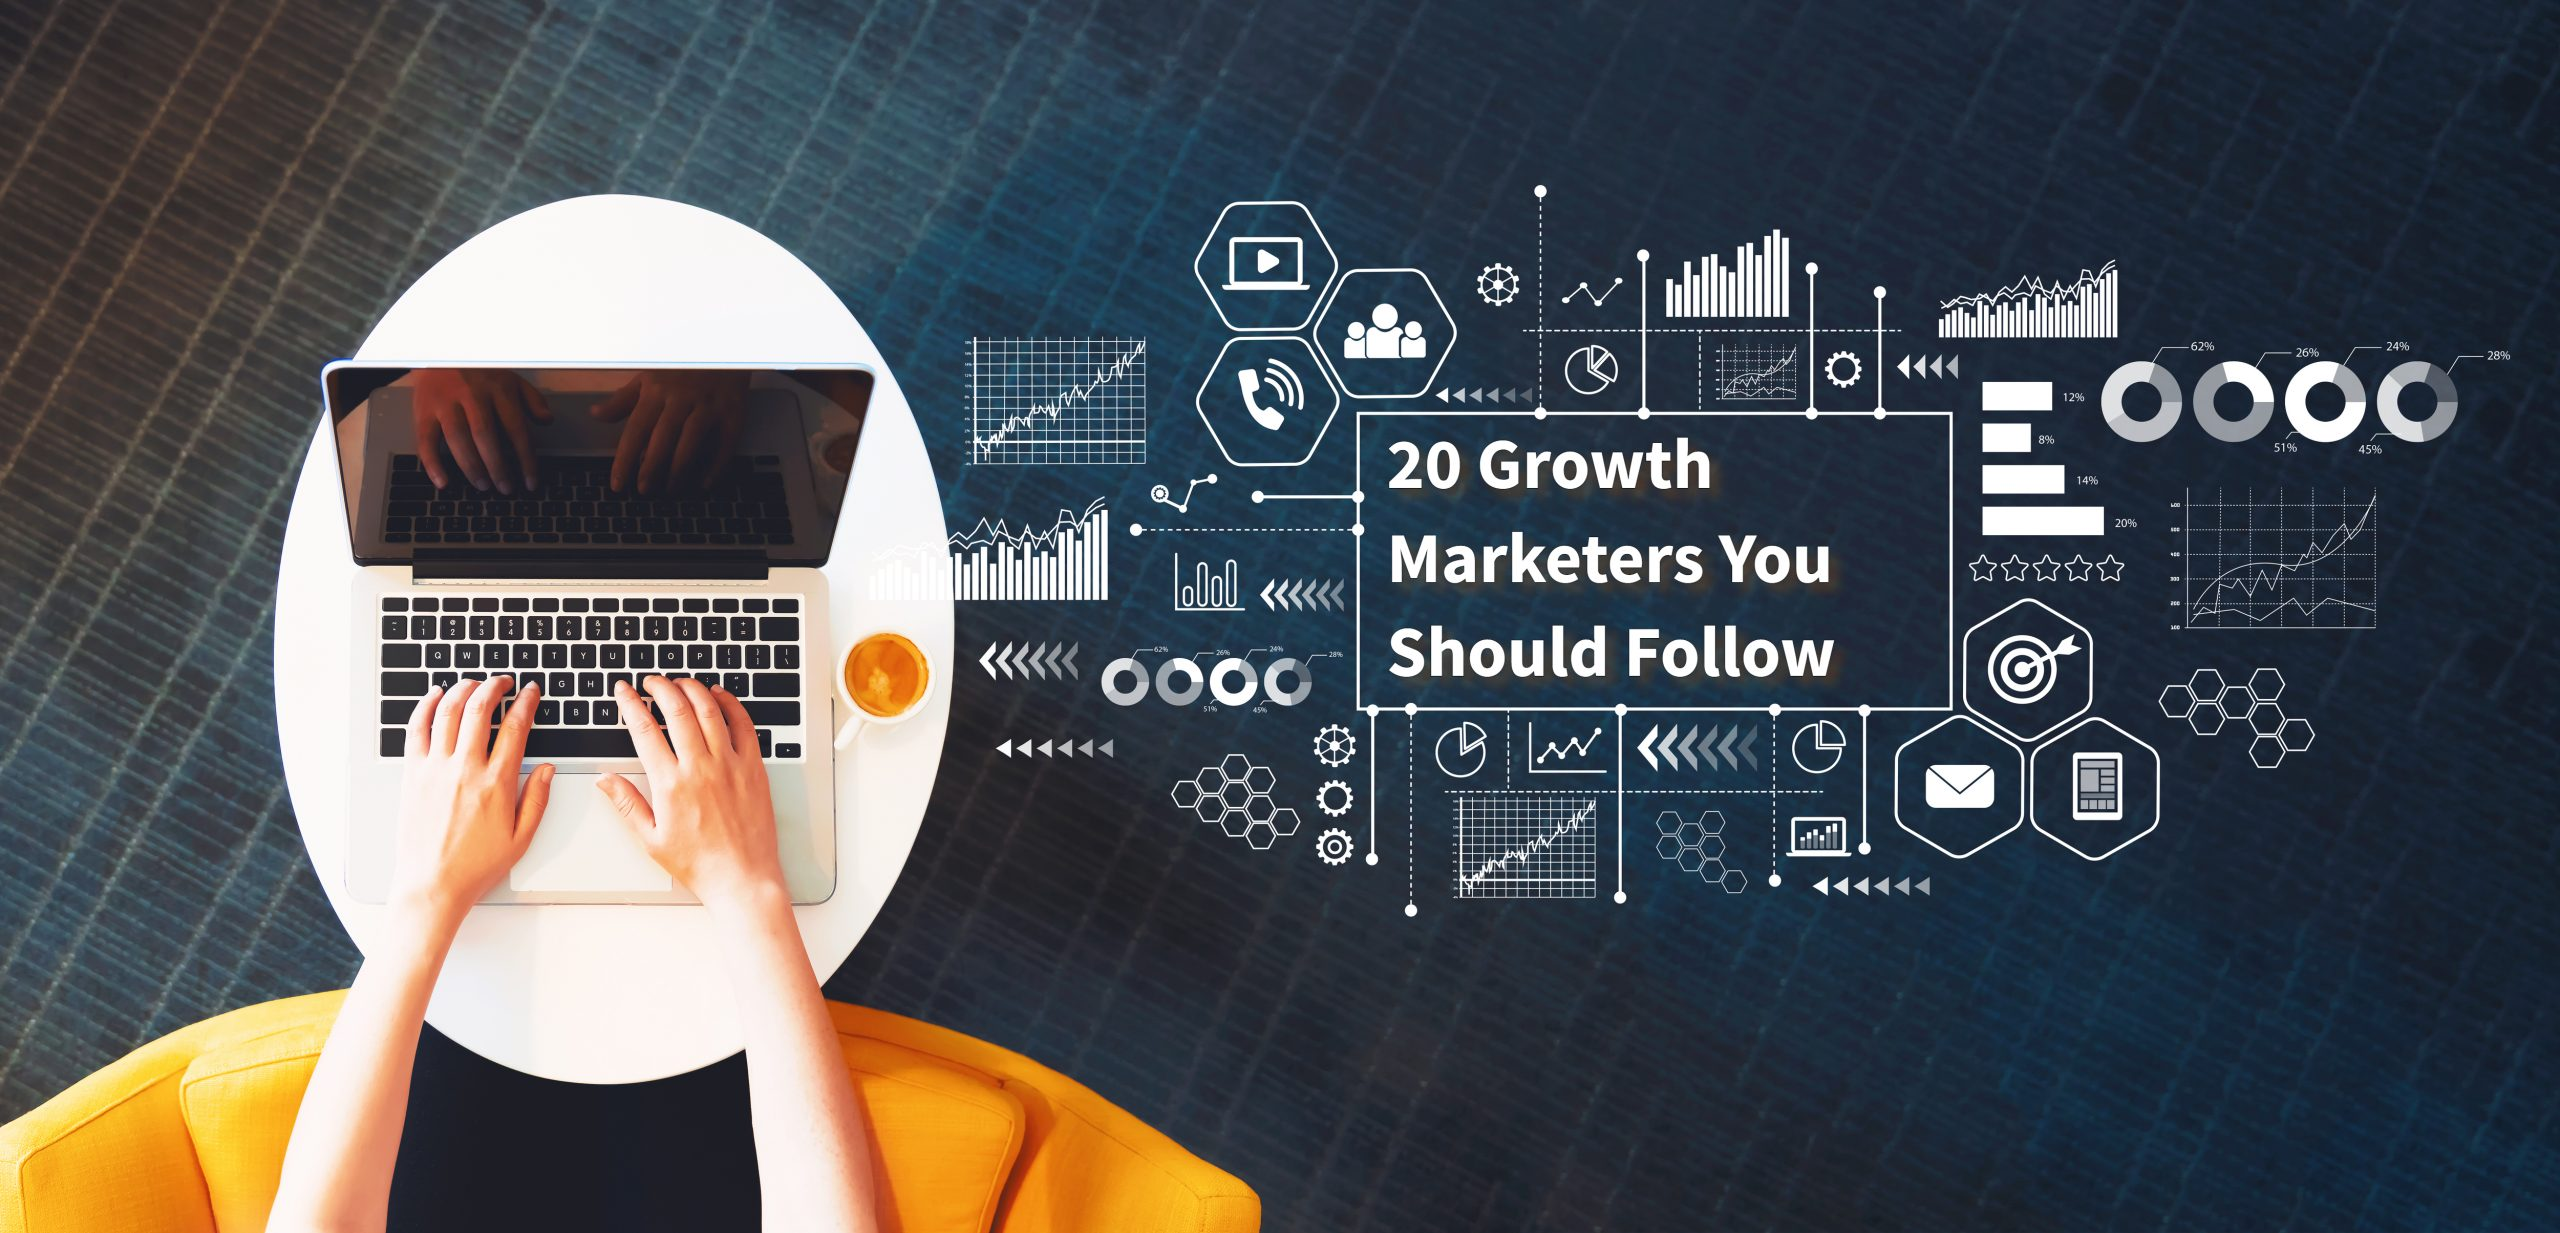 20 Growth Marketers You Should Be Include Them to Your Network